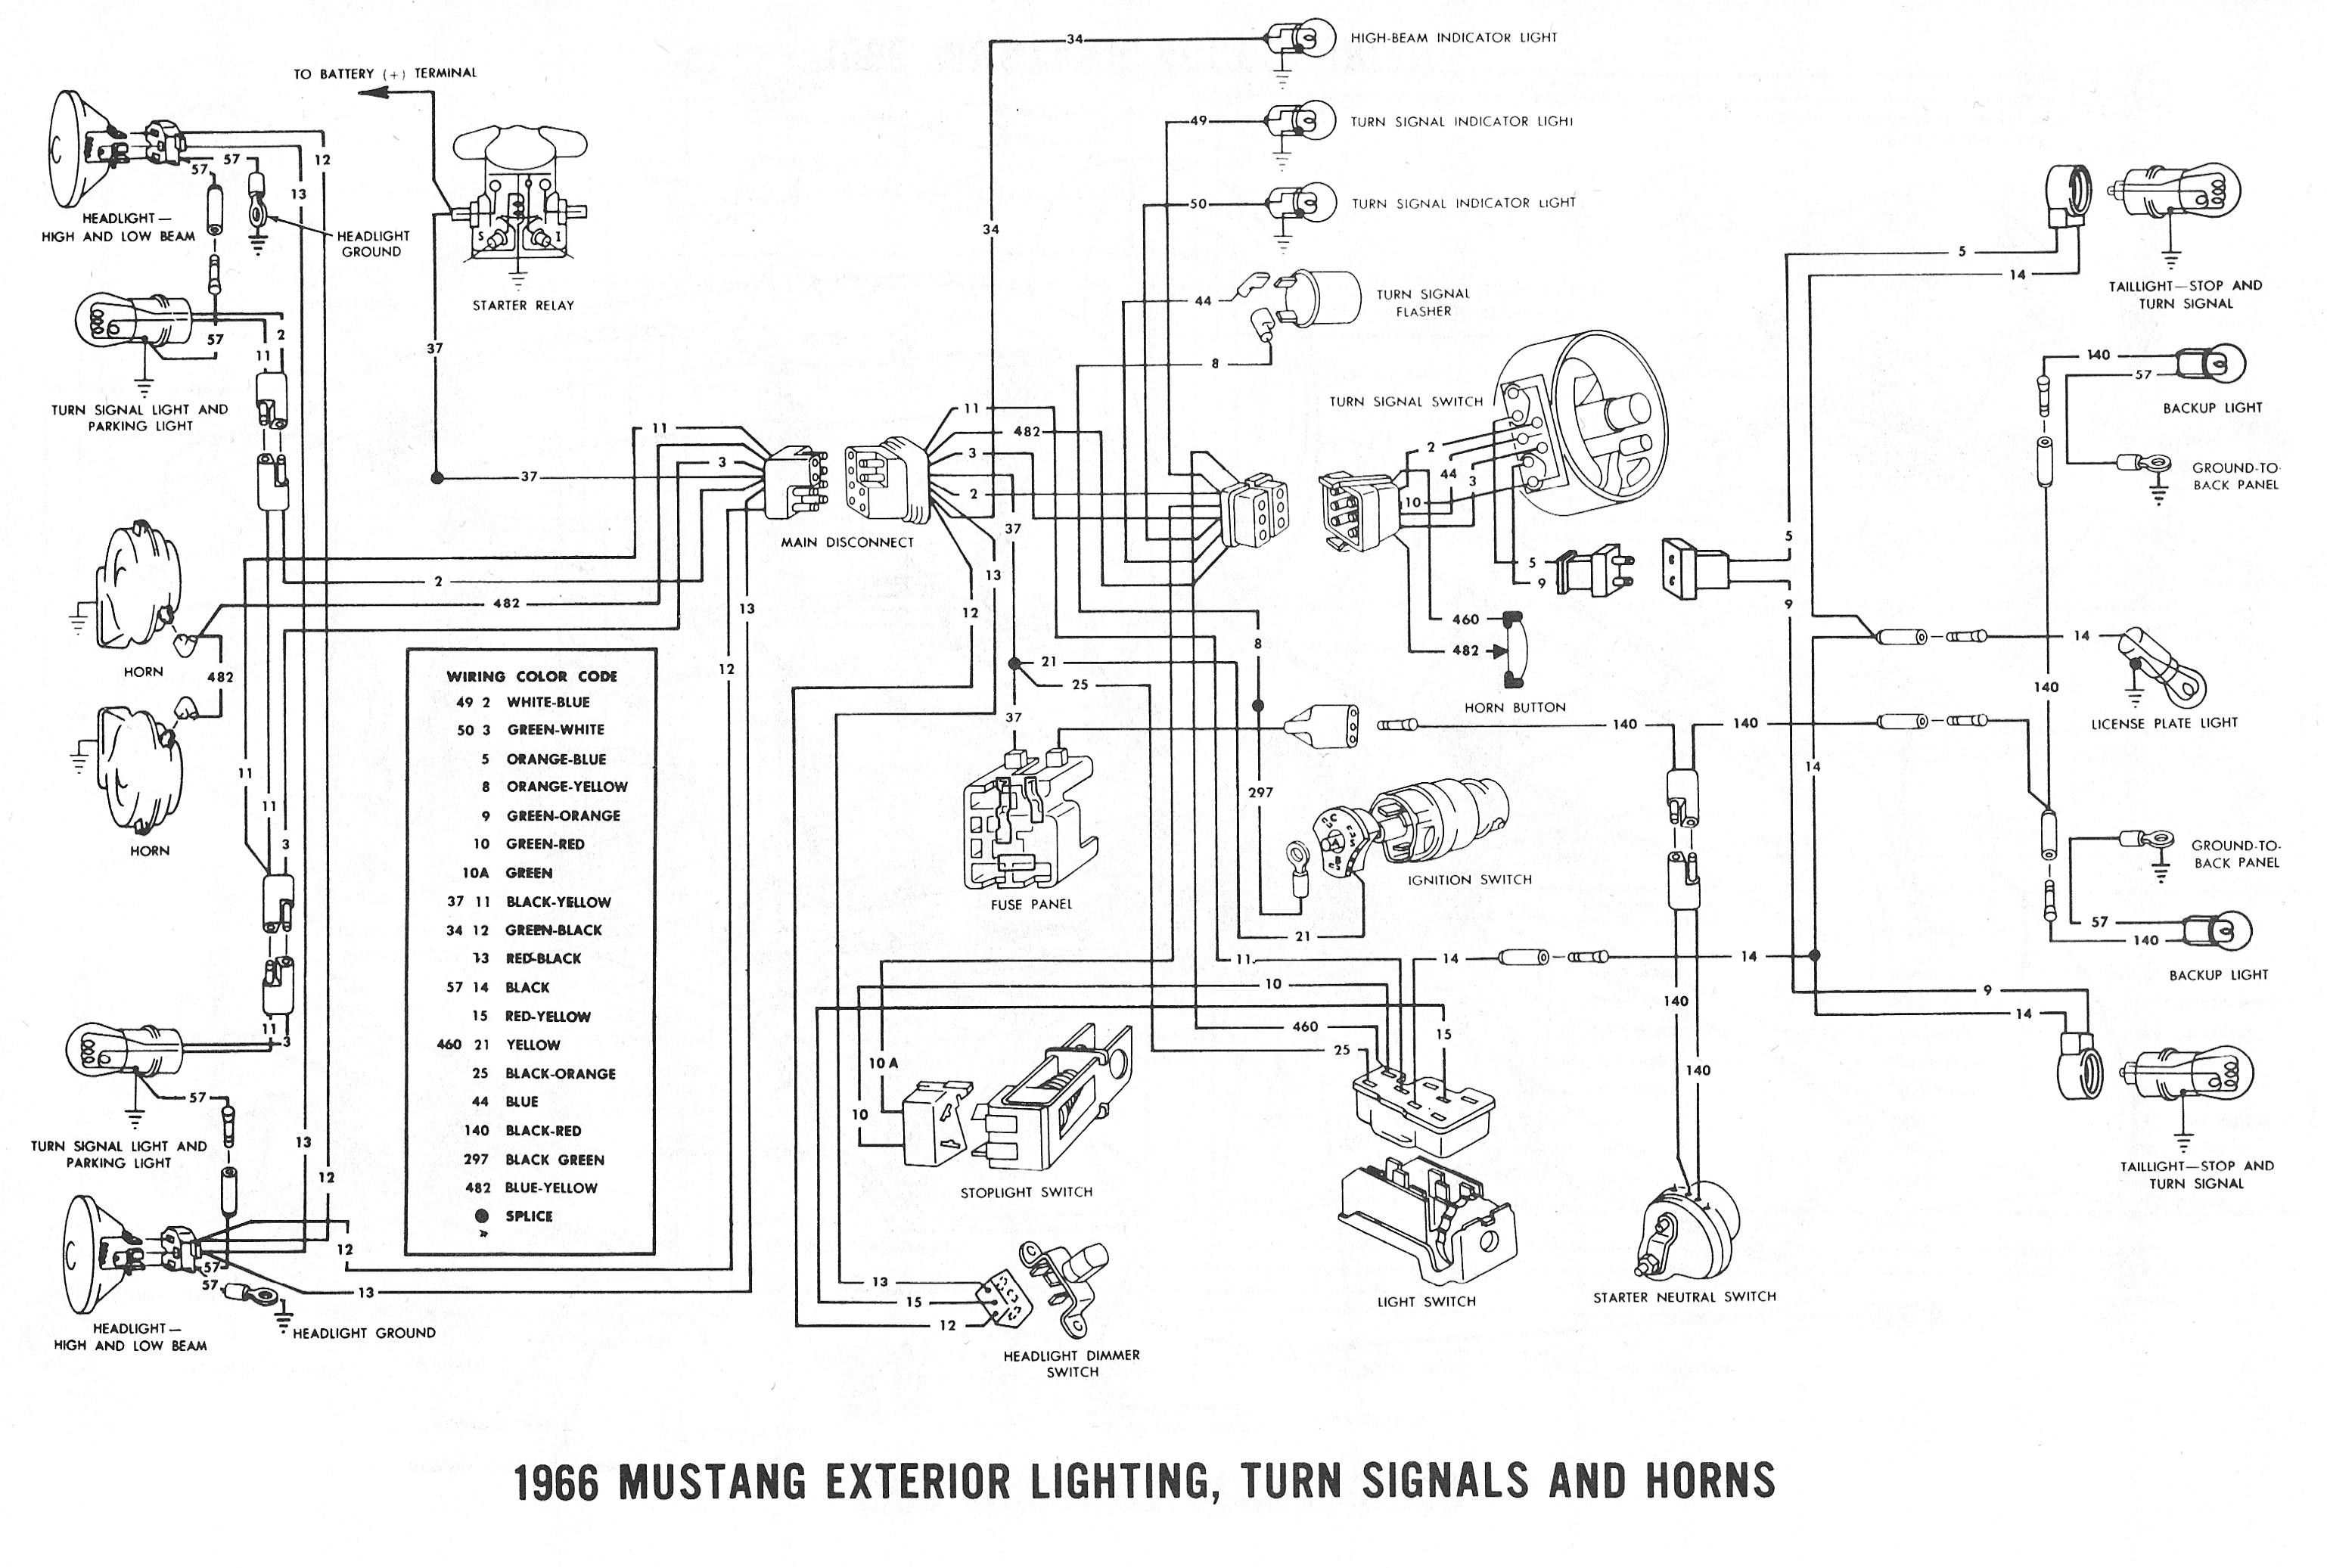 1966 ford f100 wiring schematic simple wiring diagram rh david huggett co  uk Electrical Wiring Diagram 1966 Mustang Electrical Wiring Diagram 1966  Mustang